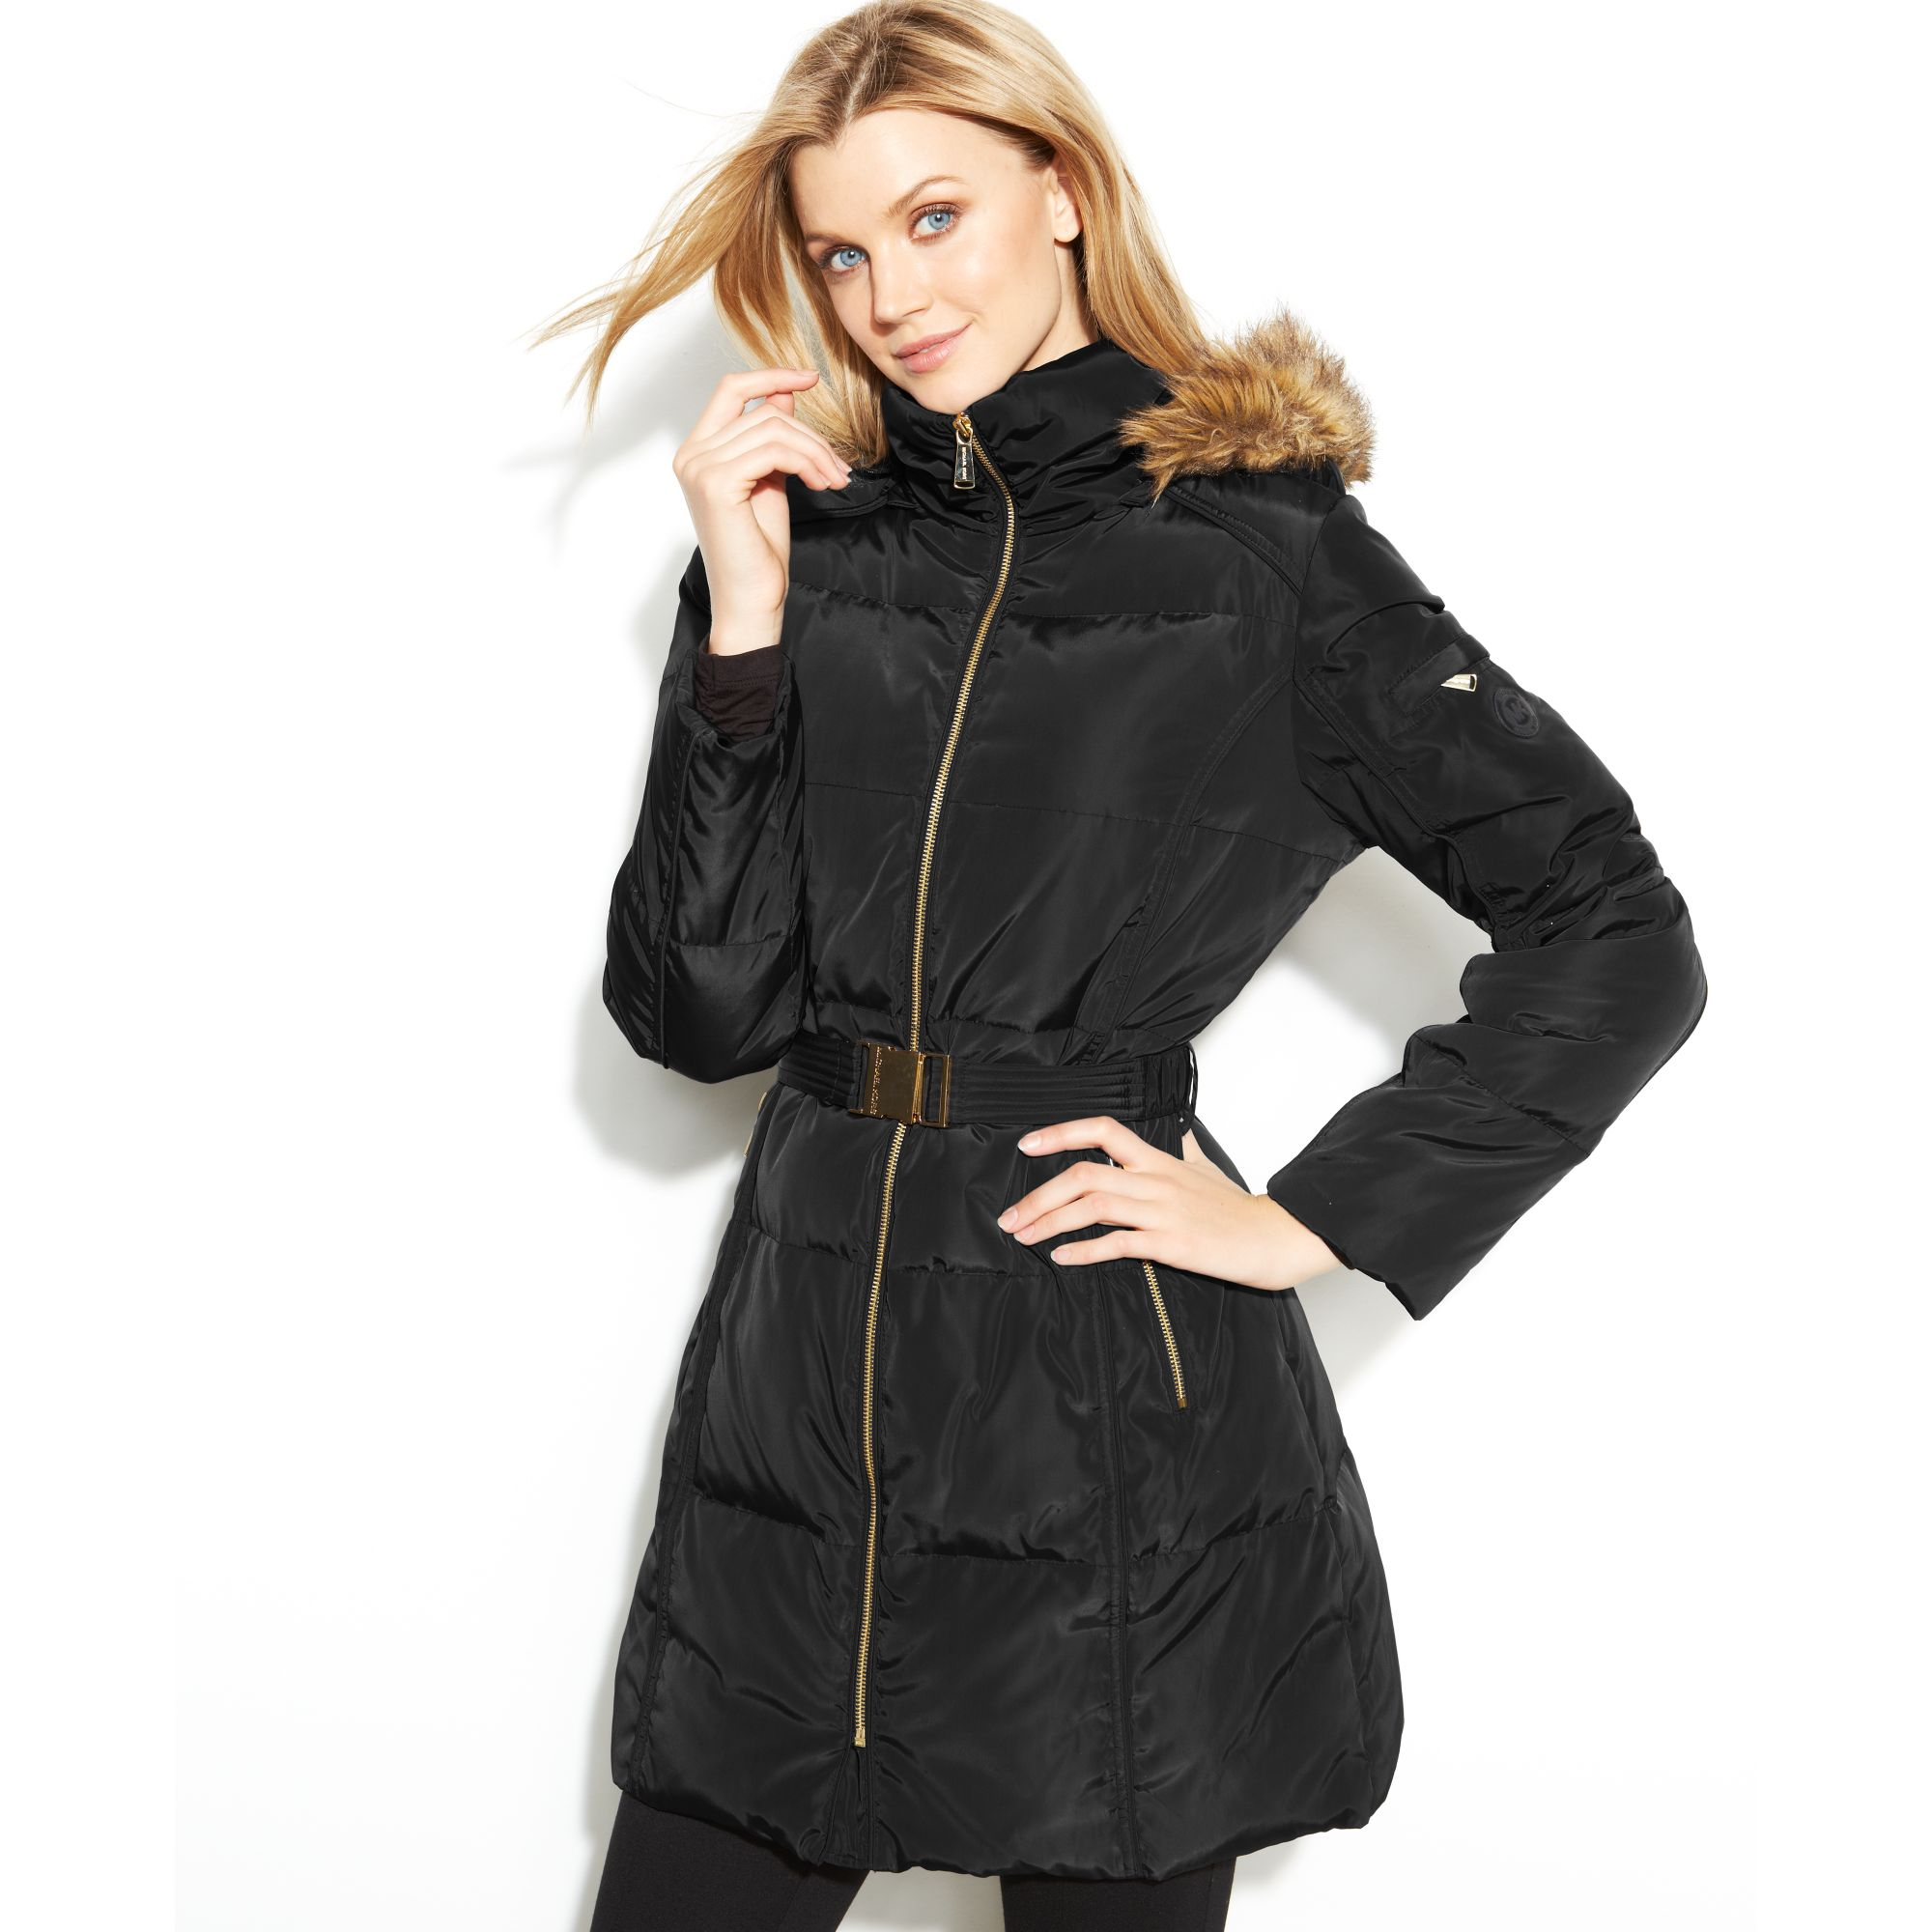 michael kors hooded faux fur trim belted puffer in black lyst #2: michael kors black hooded fauxfurtrim belted puffer product 1